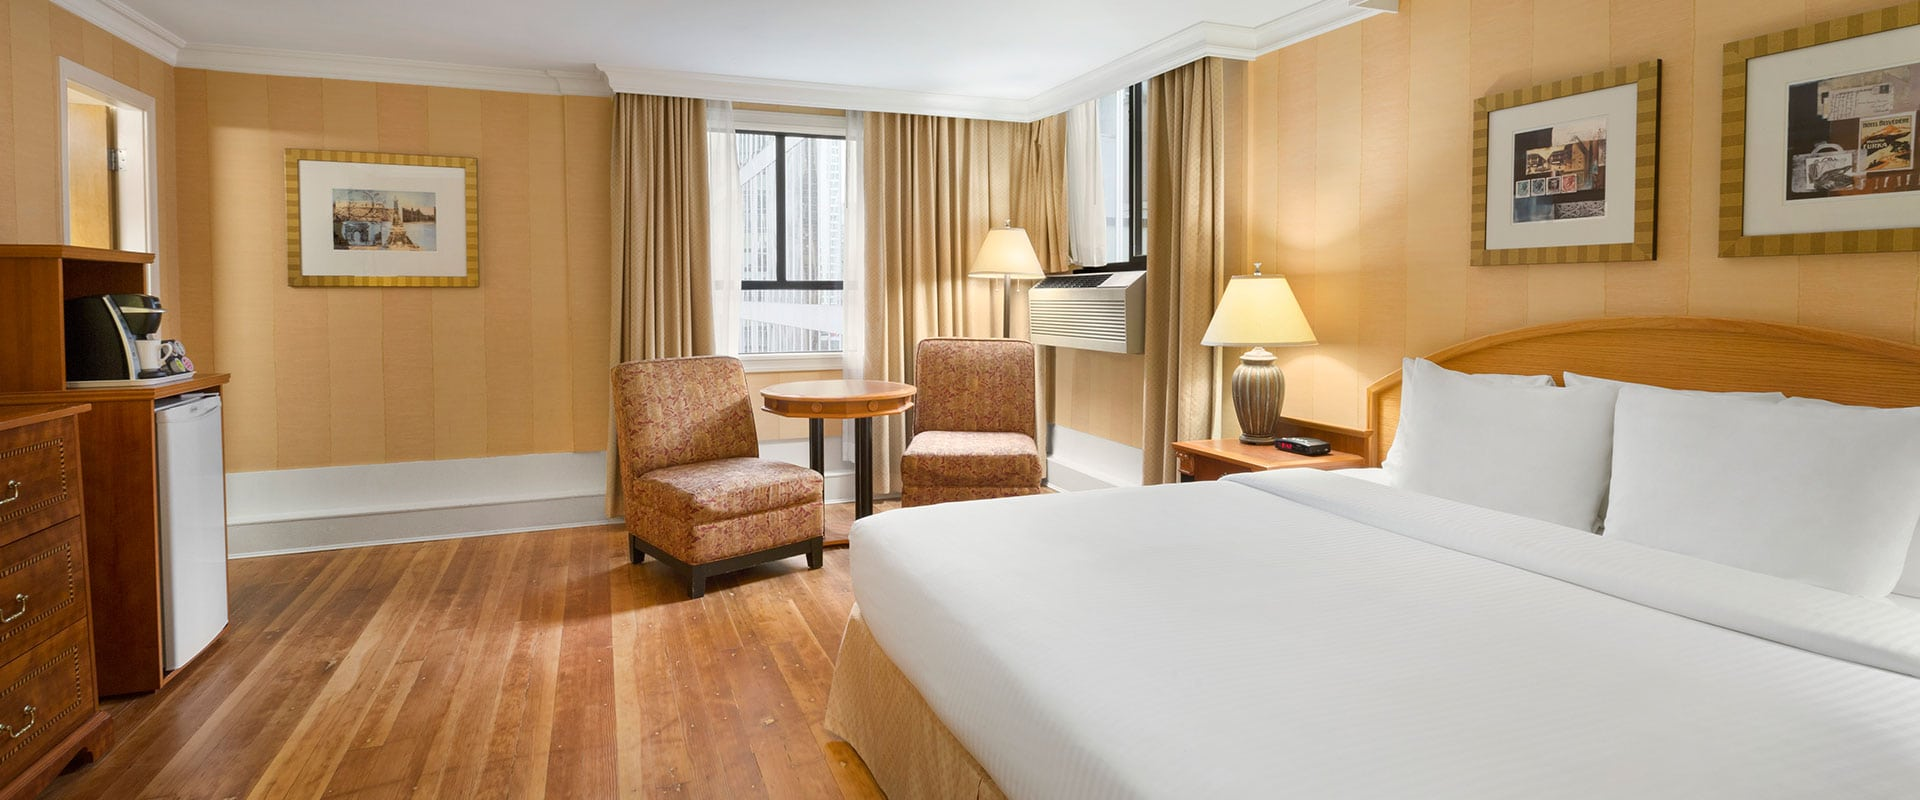 The Standard Queen suite painted in gold-yellow offers amenities such as coffee maker, mini refrigerator and air conditioner for guests at Days Inn Vancouver Downtown.